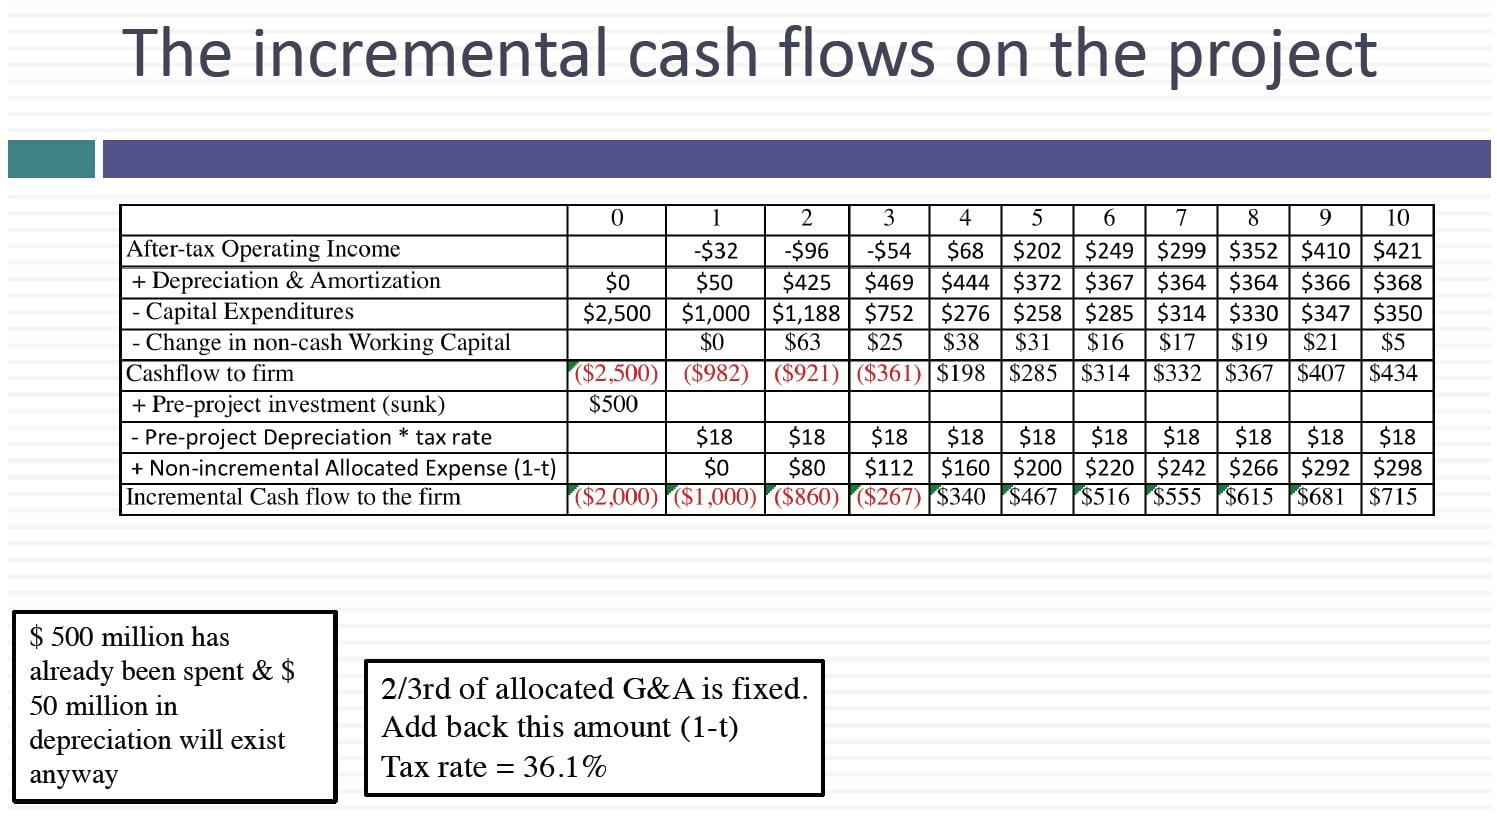 Earnings To Incremental Cash Flows